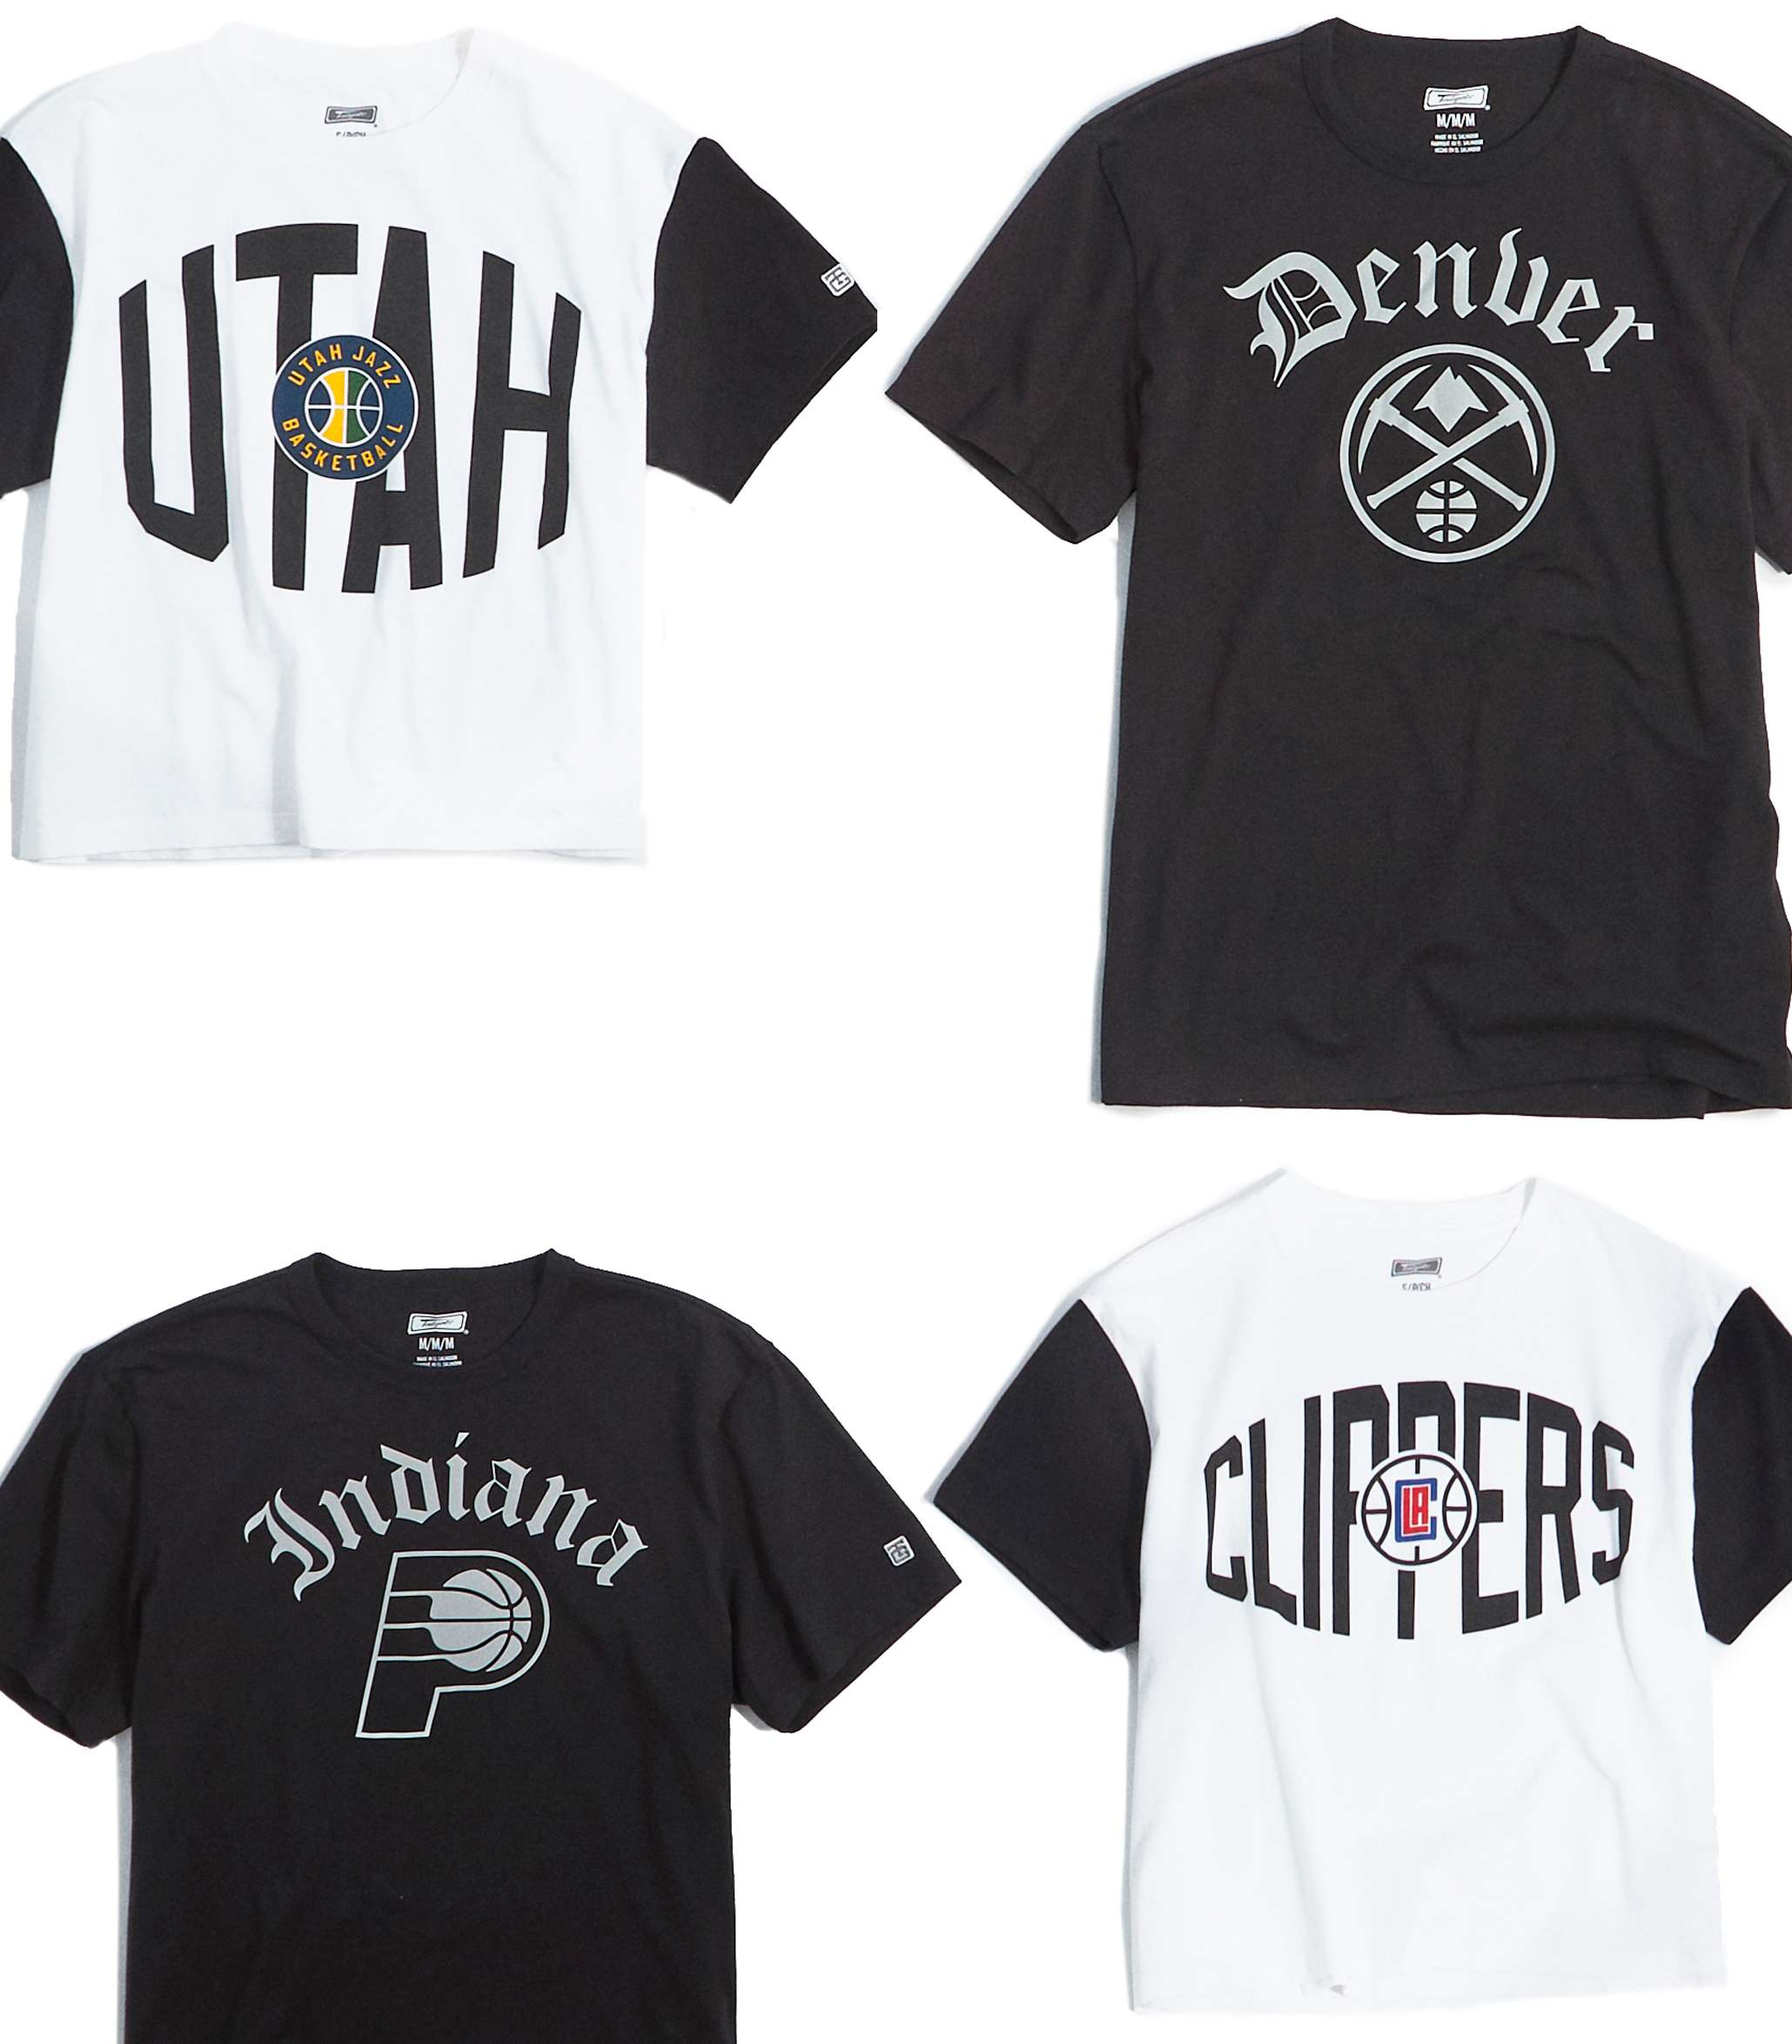 collections apparel